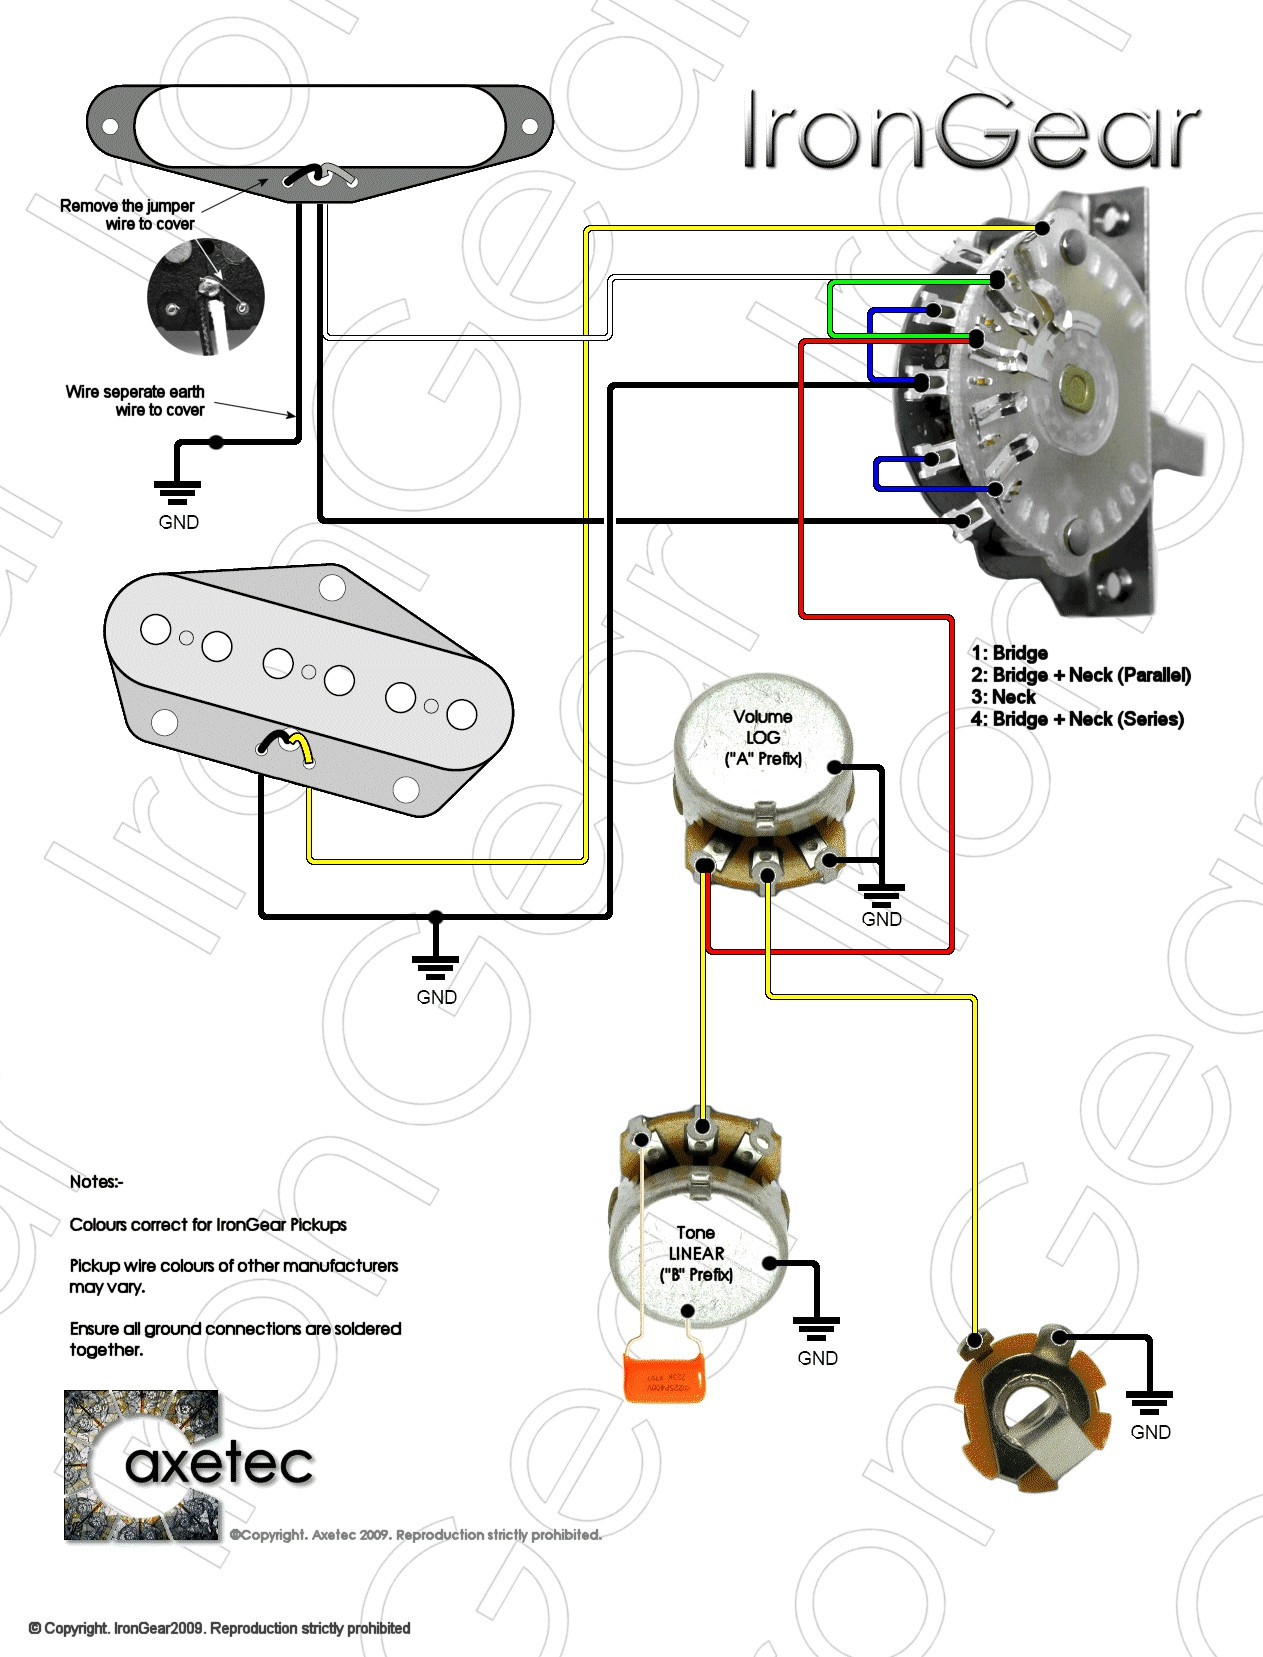 Telecaster Wiring Diagram 3 Way Import Switch from wholefoodsonabudget.com